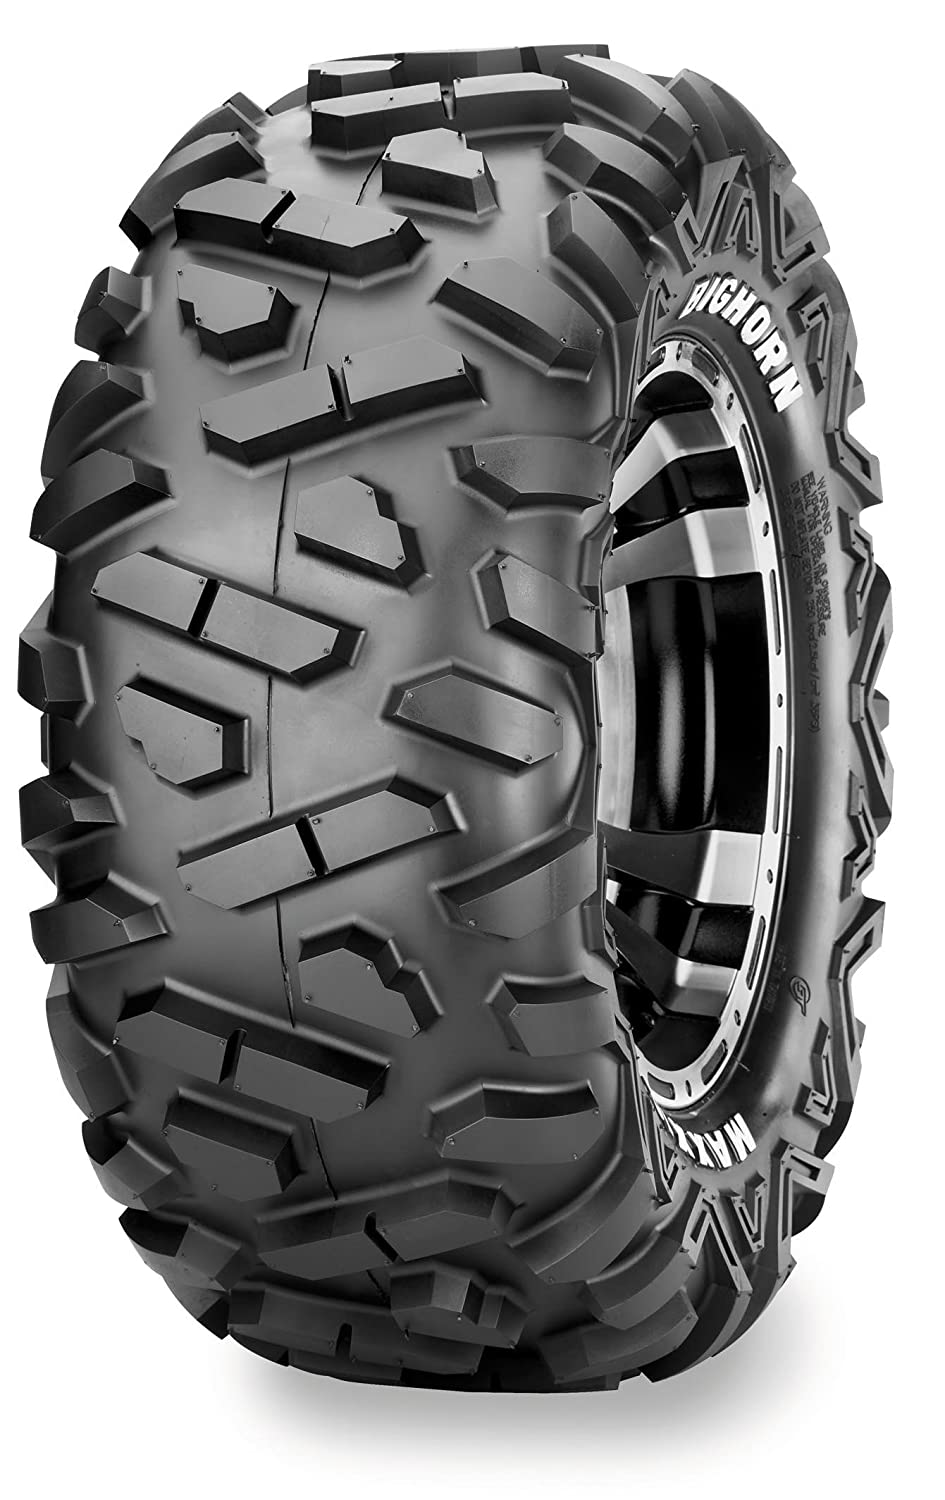 Maxxis M918 Bighorn Tire - Rear - 28x10Rx14 , Position: Rear, Rim Size: 14, Tire Application: All-Terrain, Tire Size: 28x10x14, Tire Type: ATV/UTV, Tire Construction: Radial, Tire Ply: 6